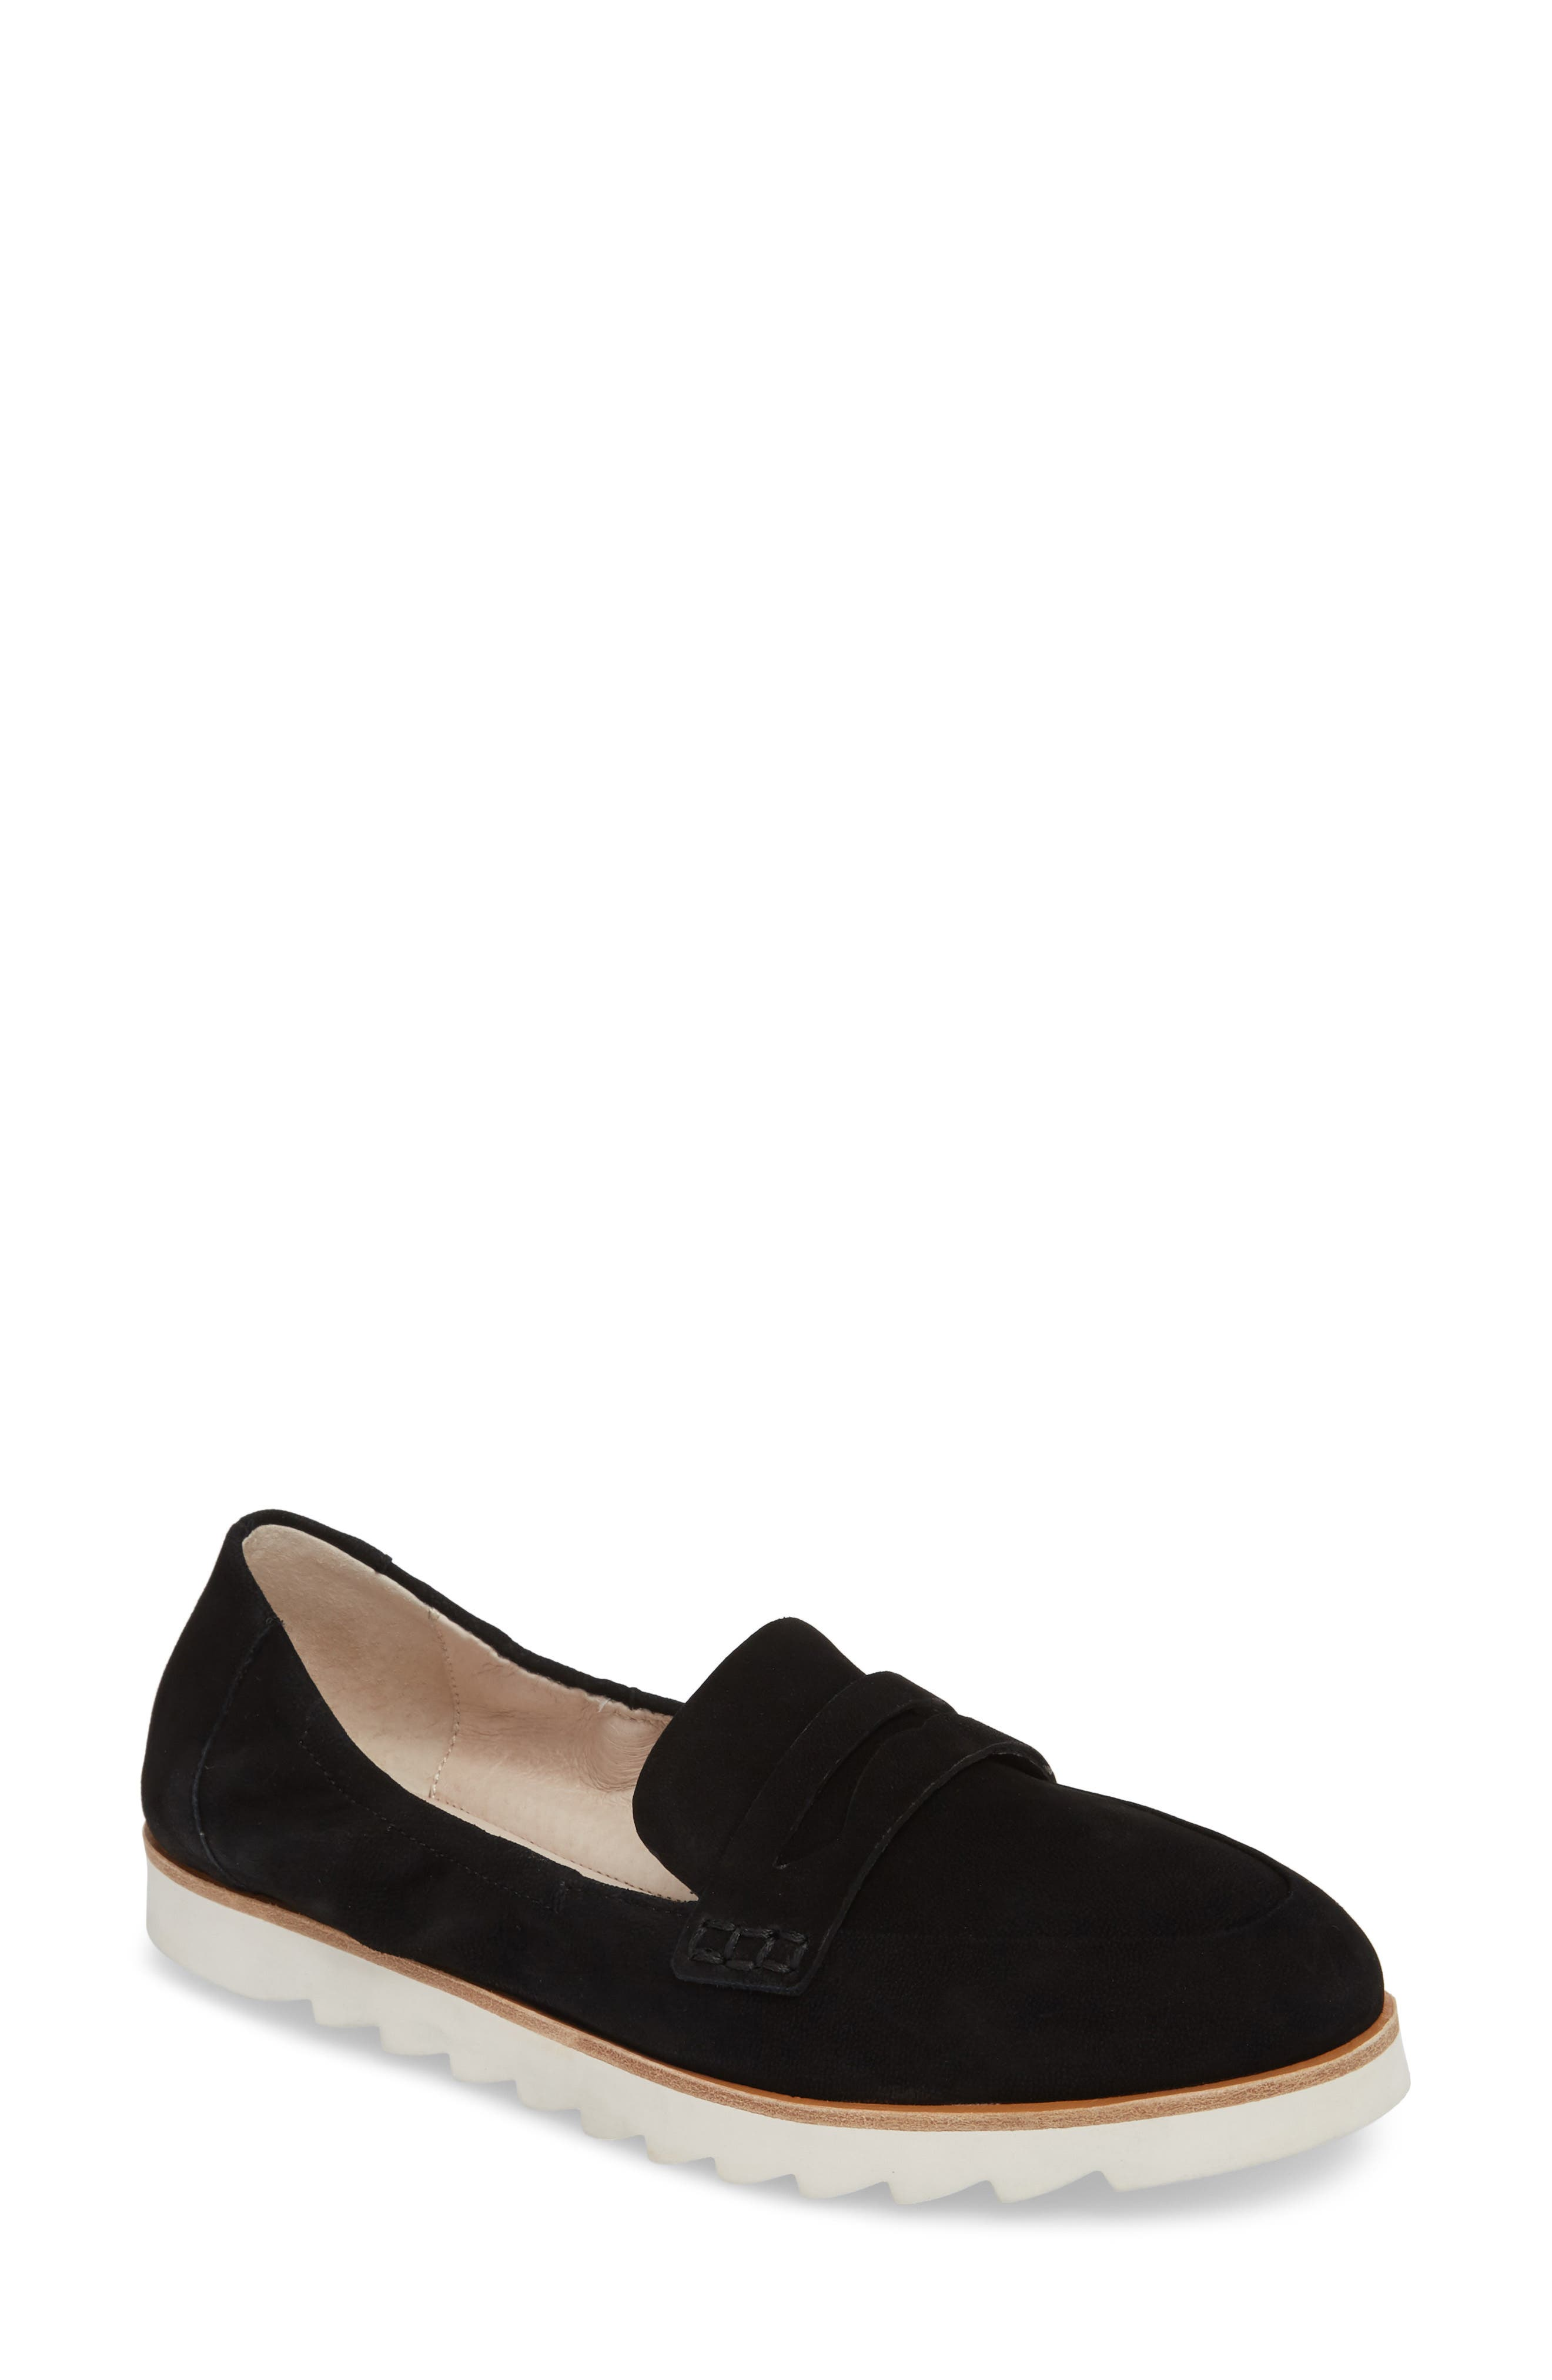 Rylee Penny Loafer,                         Main,                         color, 001